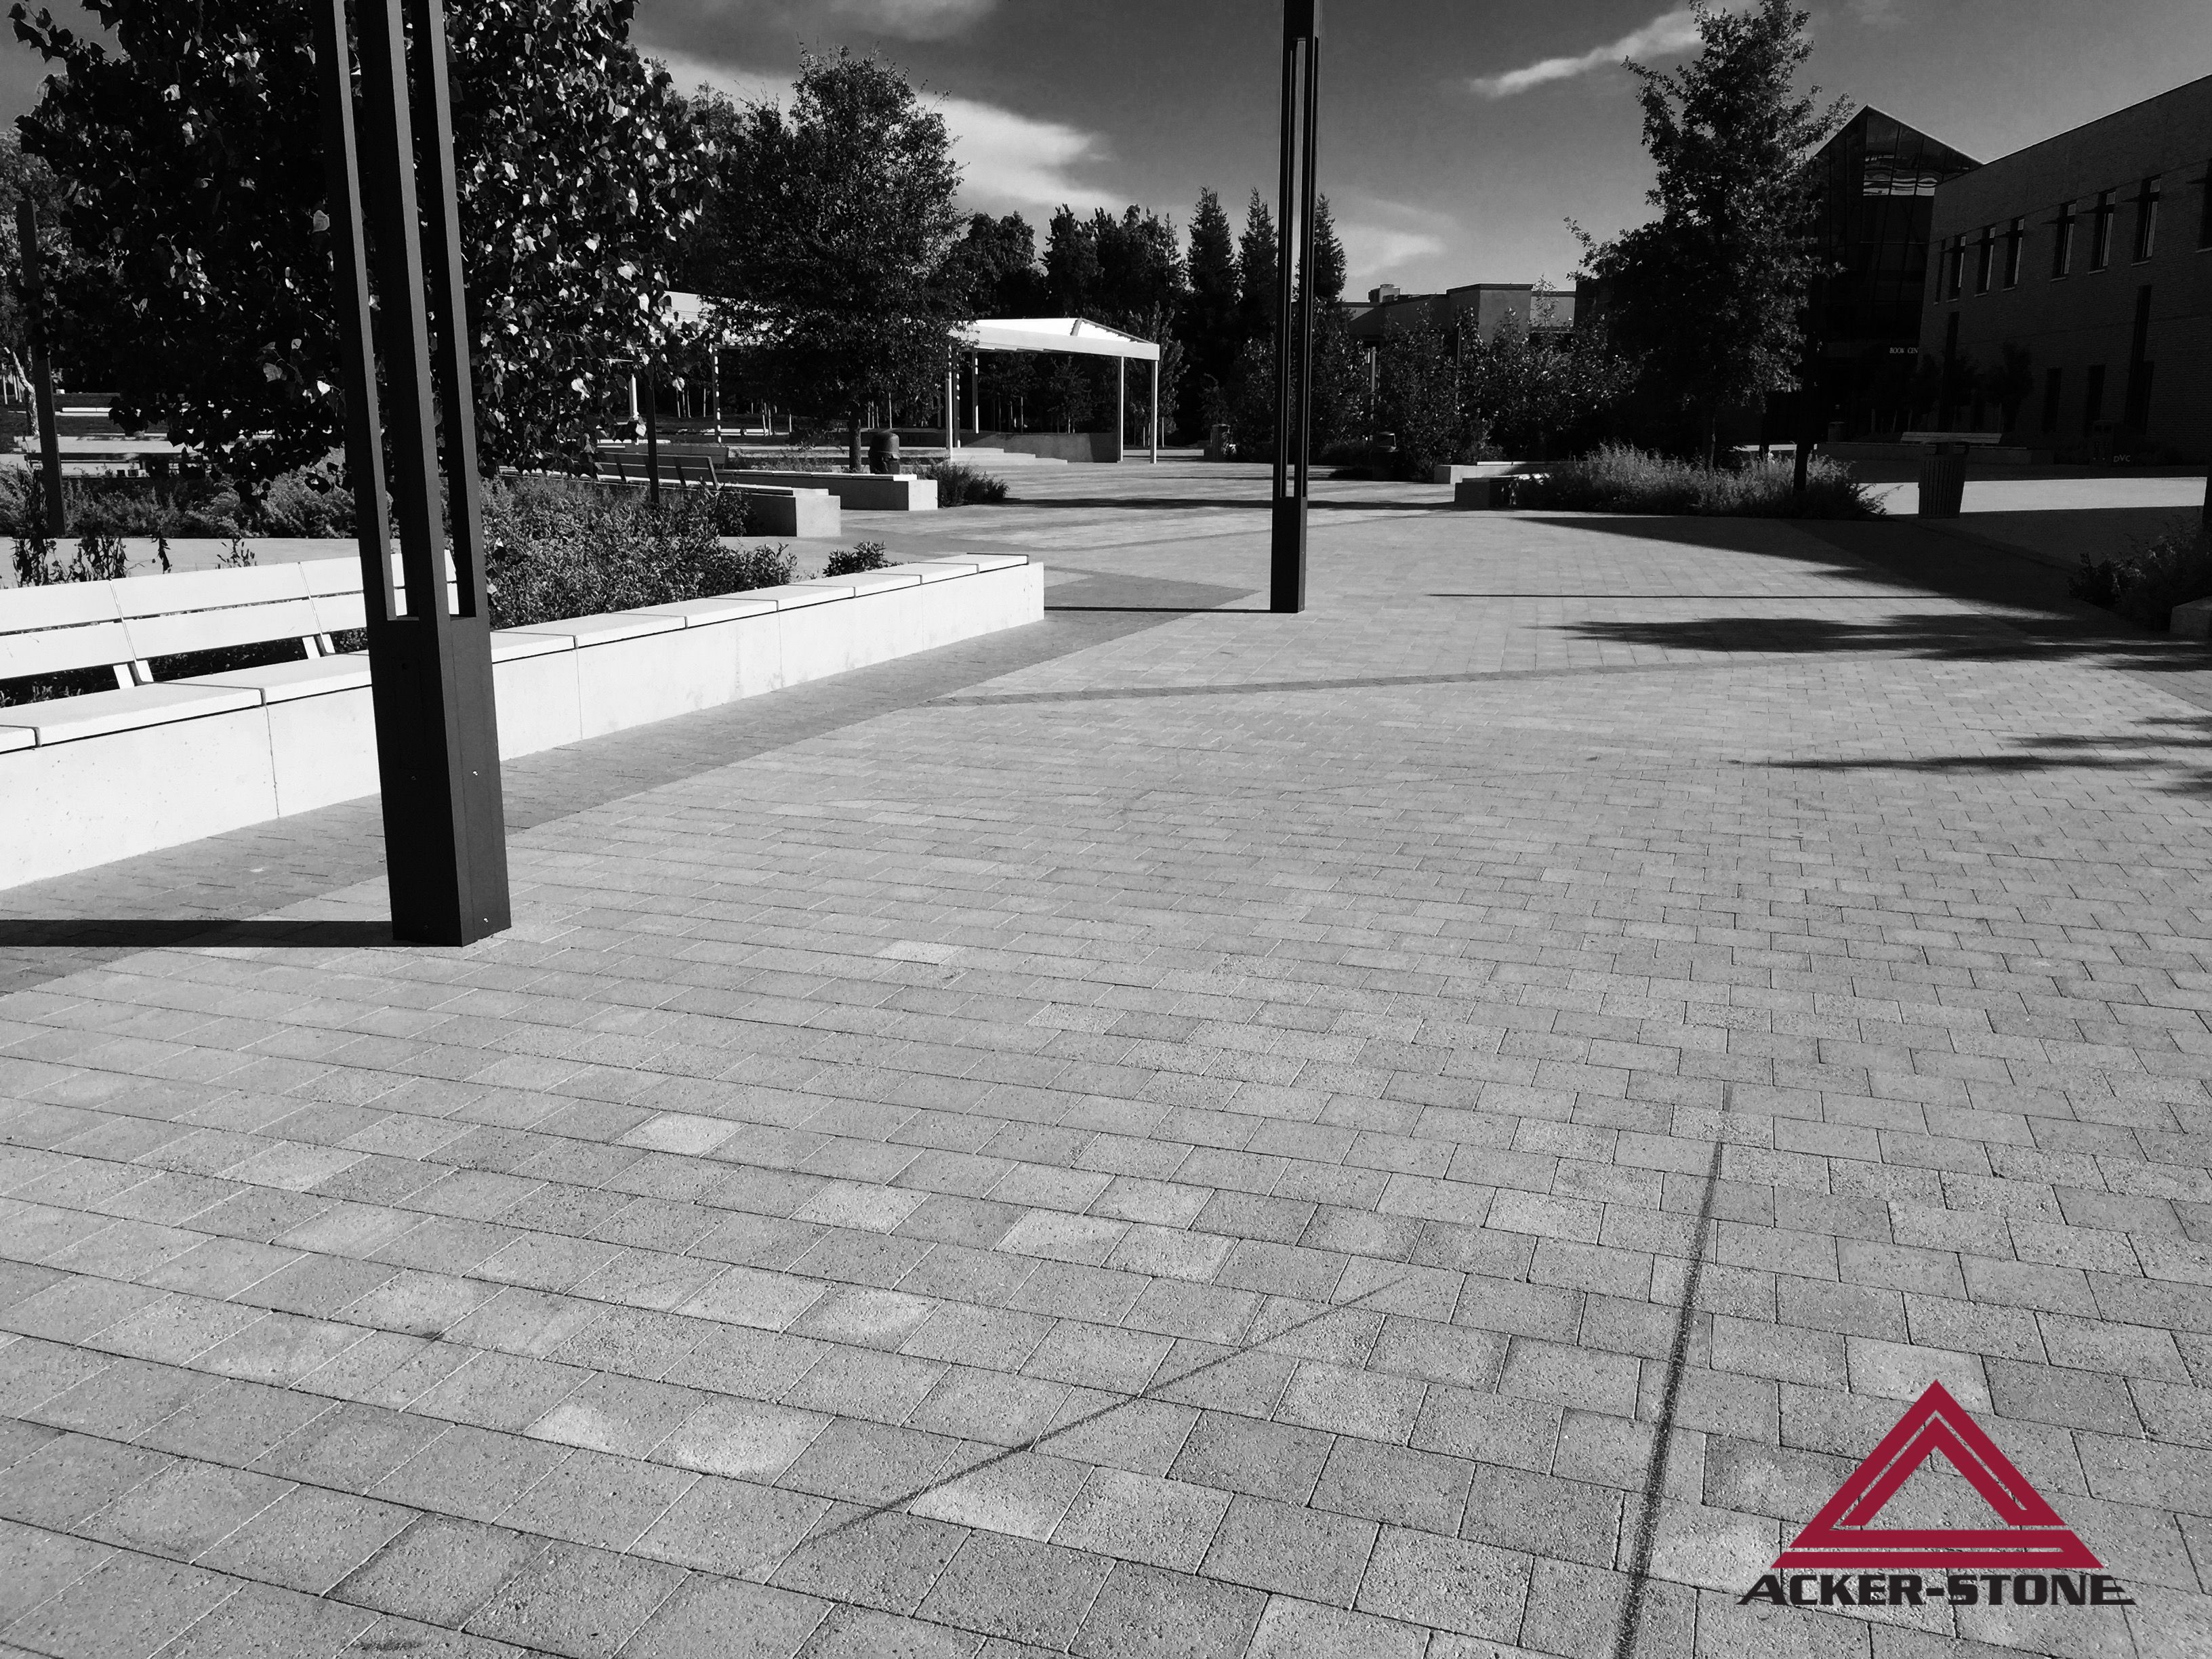 Check Out This Beautiful Project With Our 8 X 8 No Chamfer 8cm Color Diablo Blend Tm With A Shotblast Finish 6 X 6 No Chamfer Tm Pavers Beautiful Structures